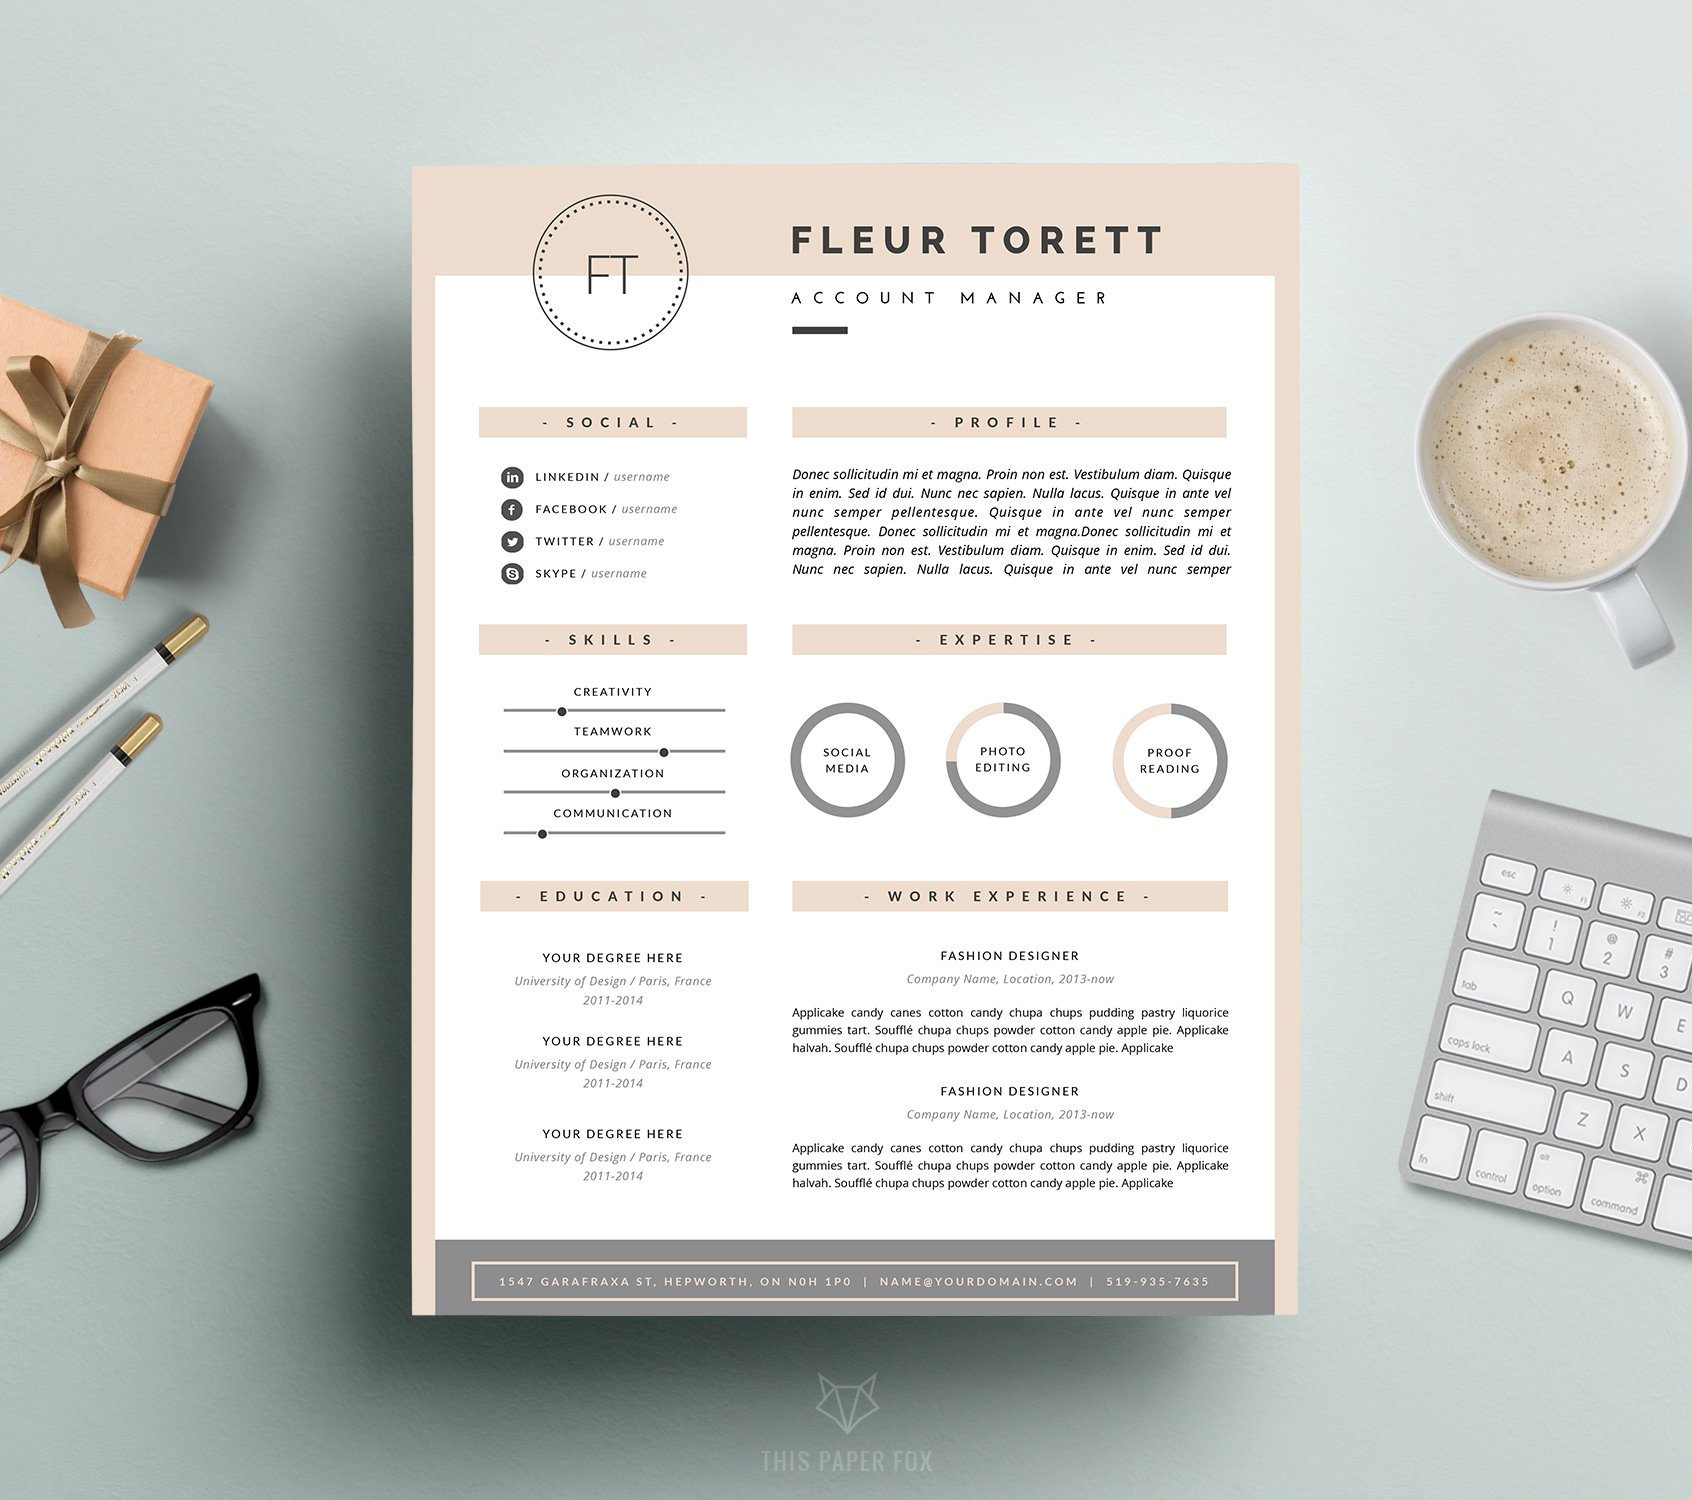 sample template resume resume template cv design resume templates 24705 | fleur 1